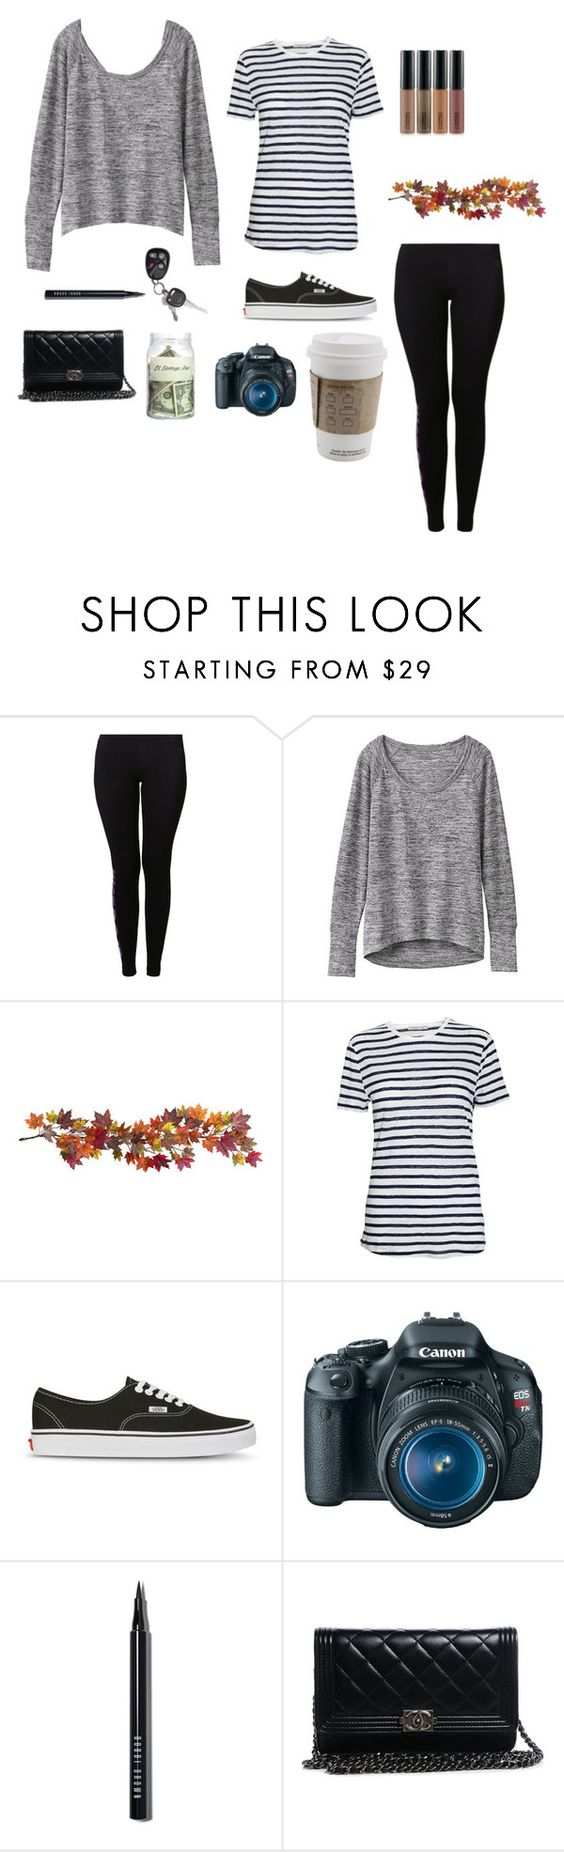 """Fall"" by glew08 ❤ liked on Polyvore featuring NIKE, Athleta, Nearly Natural, FWSS, Vans, Eos, Bobbi Brown Cosmetics and Chanel"